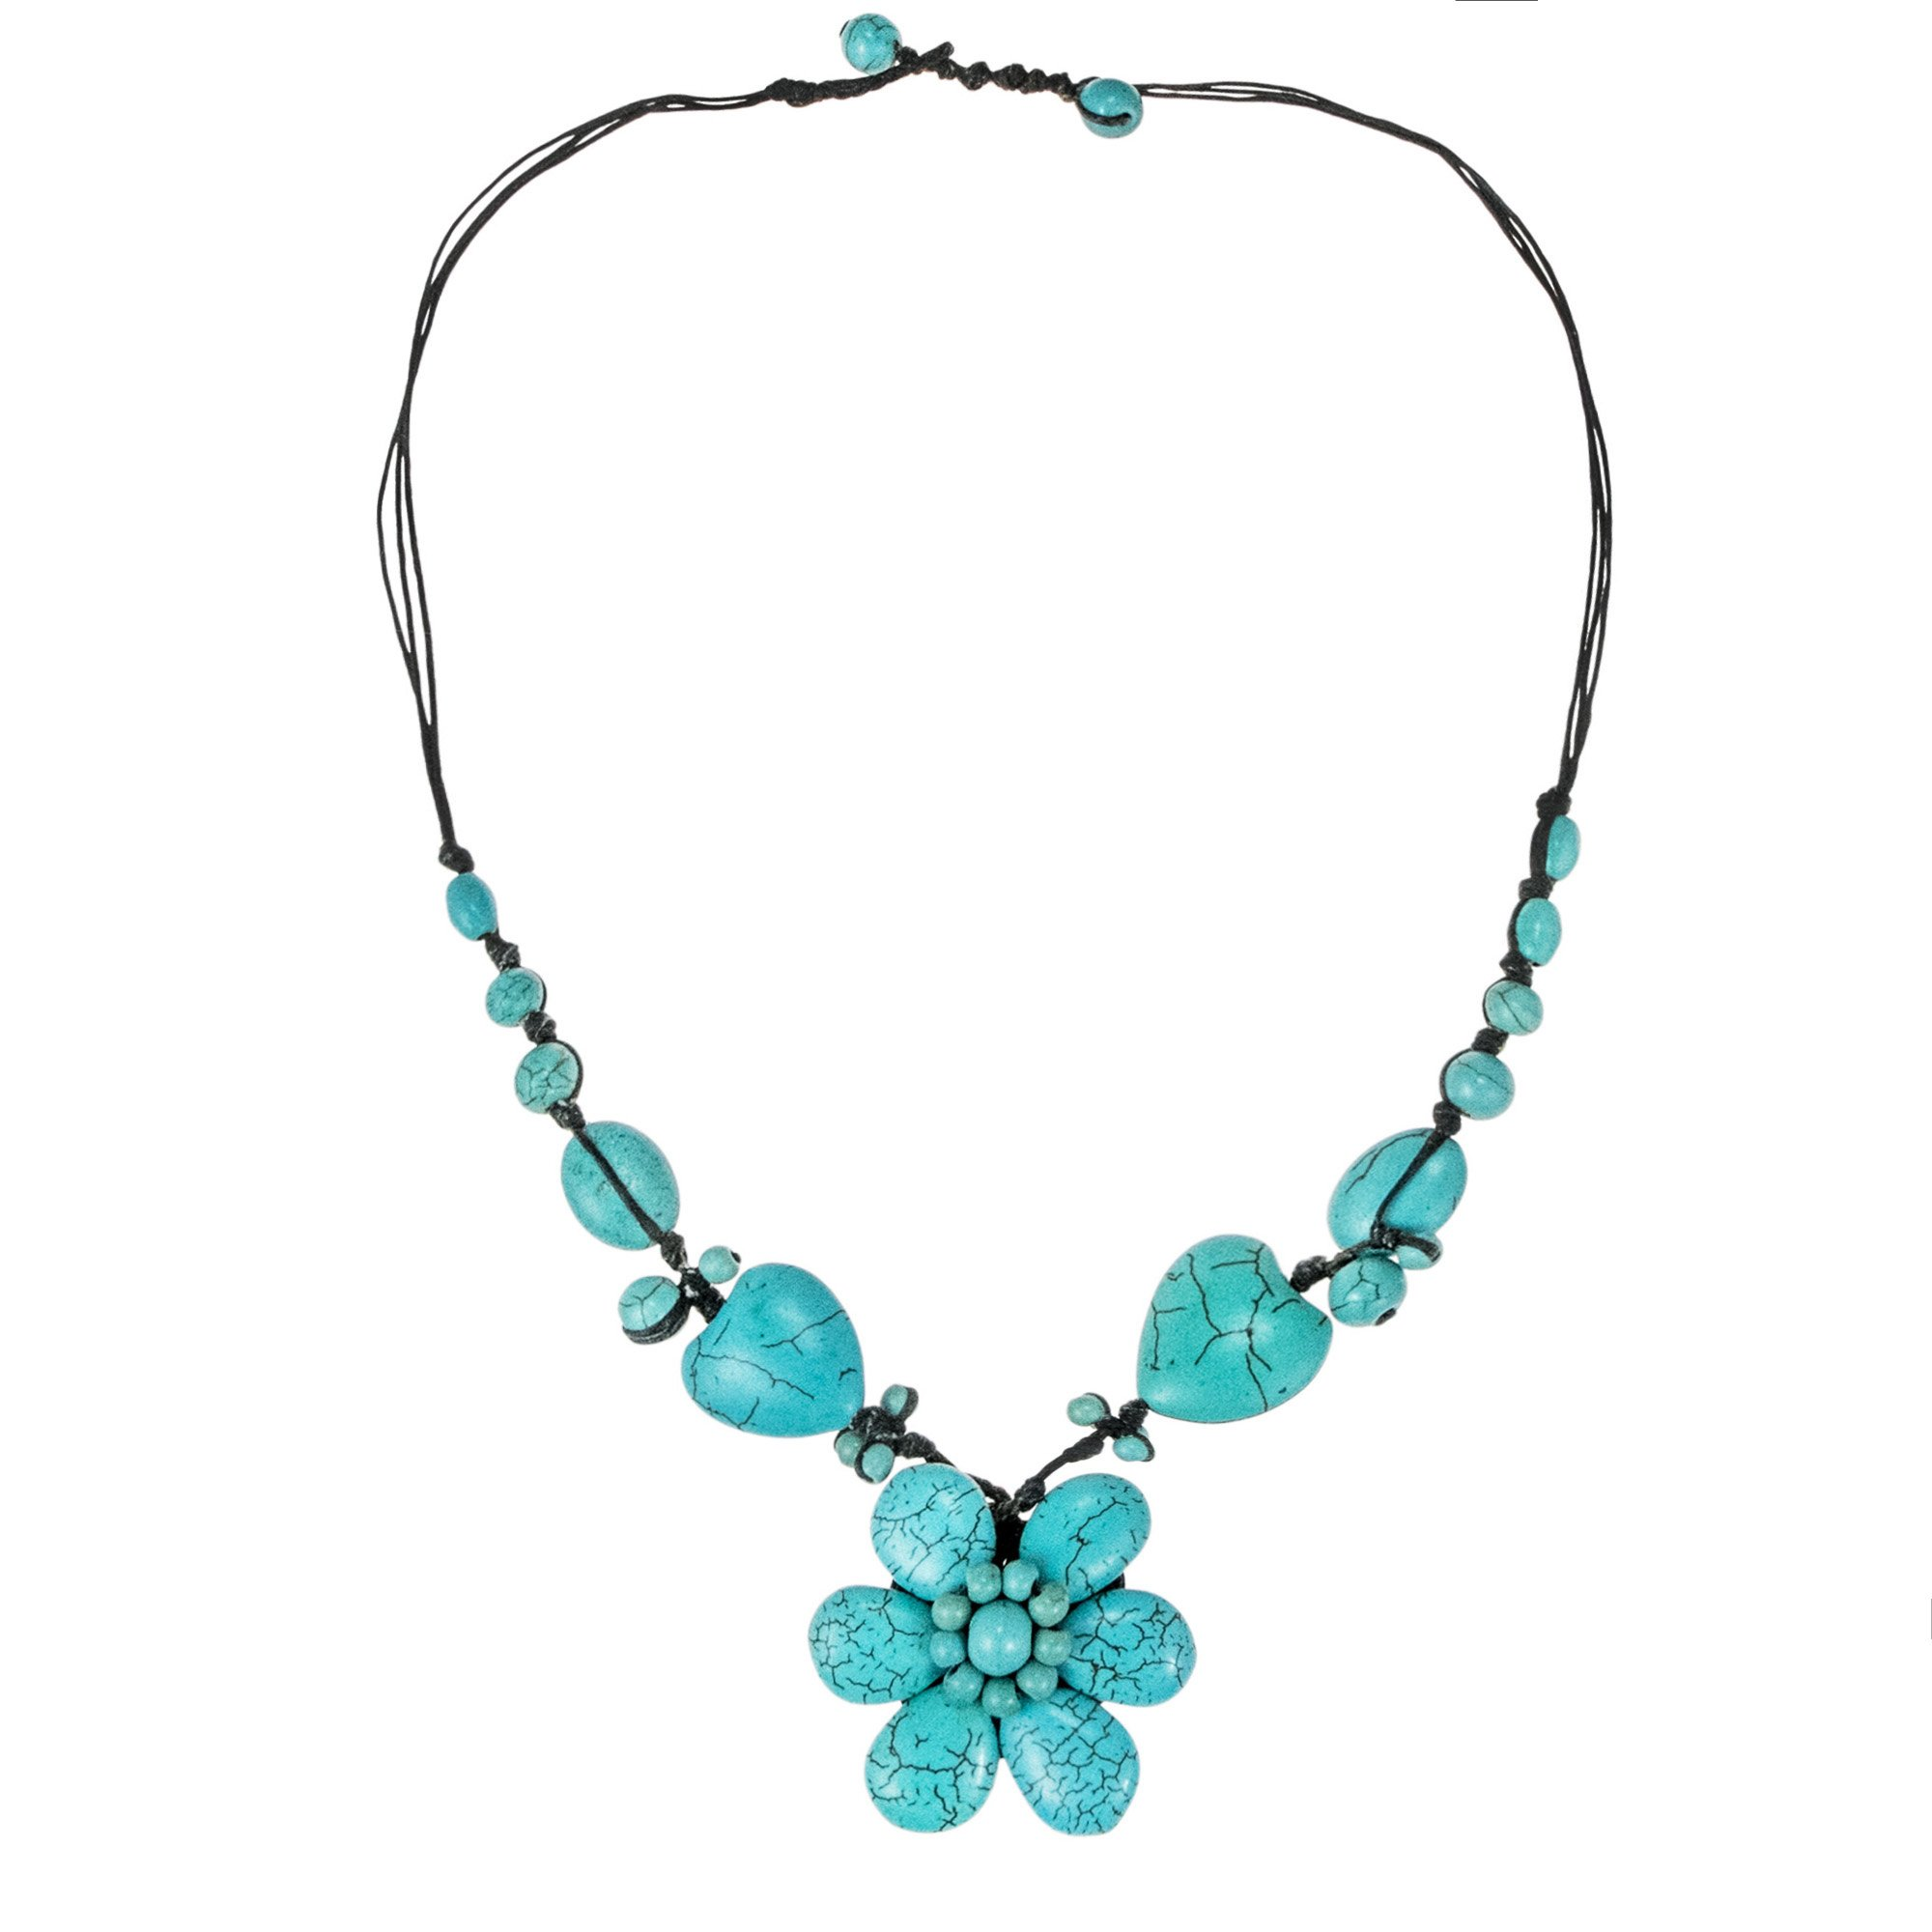 AeraVida Floral Romance Simulated Turquoise Cotton Rope Necklace